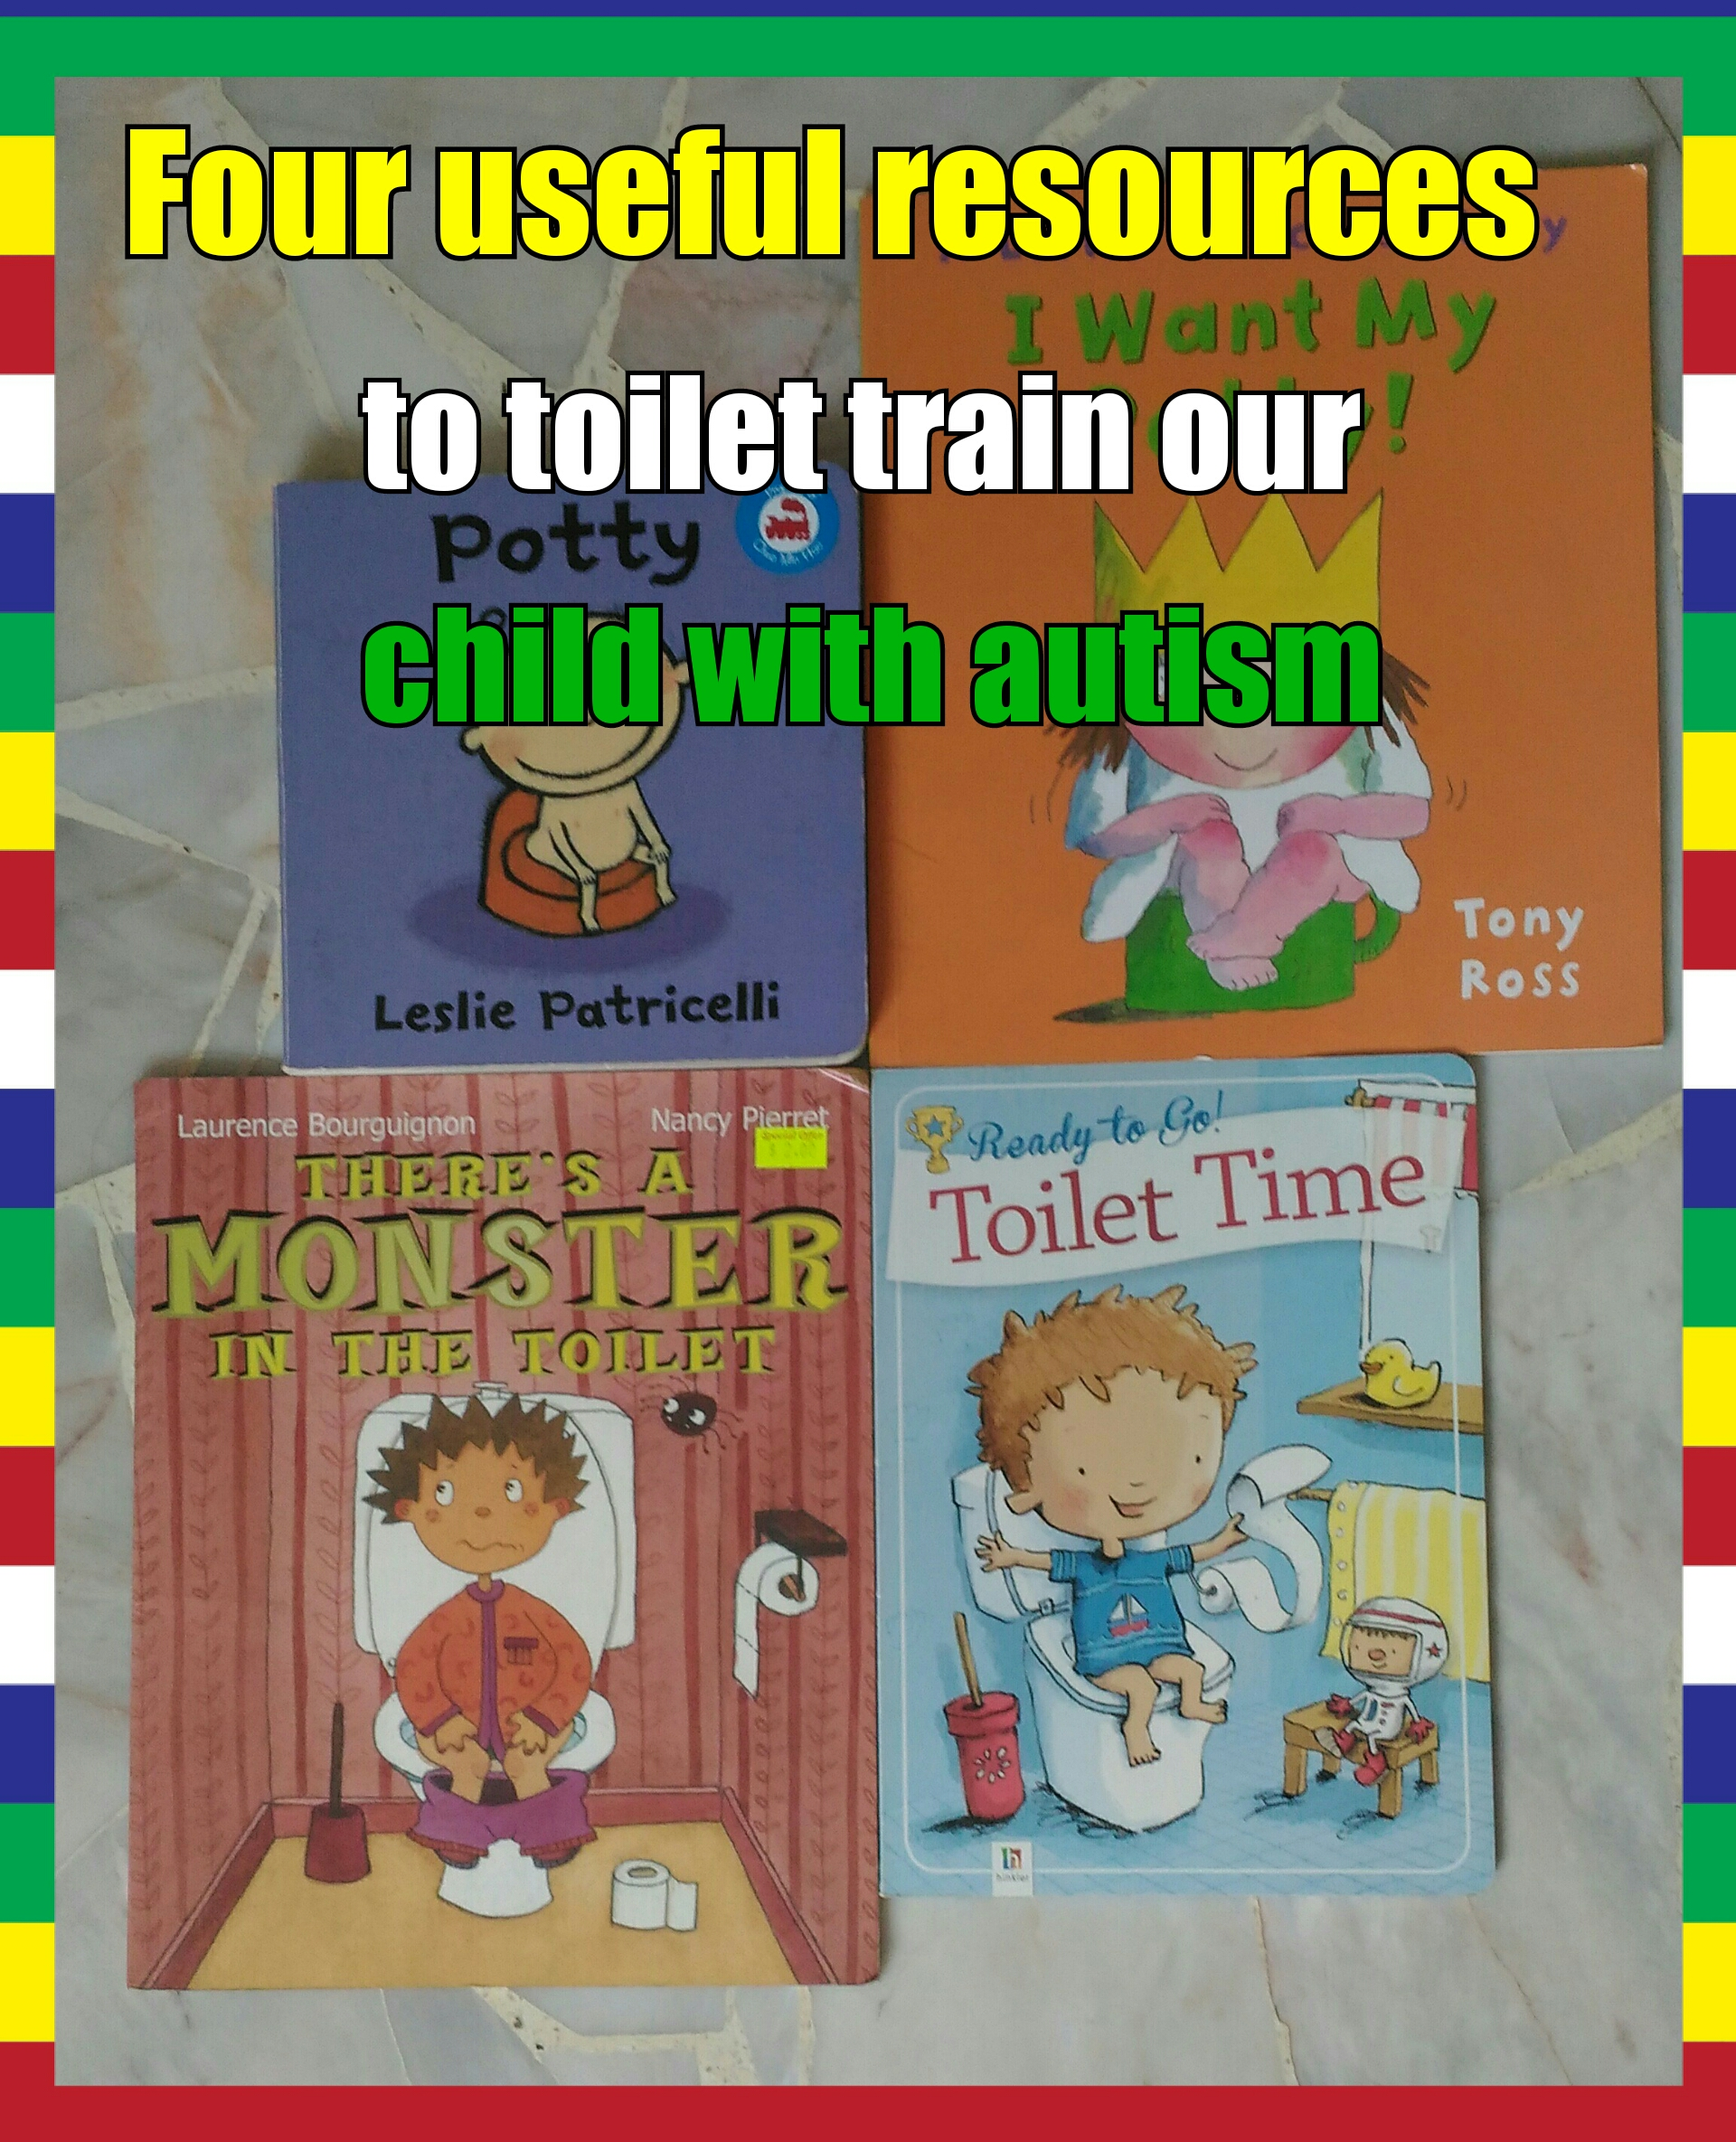 Toilet-training our child